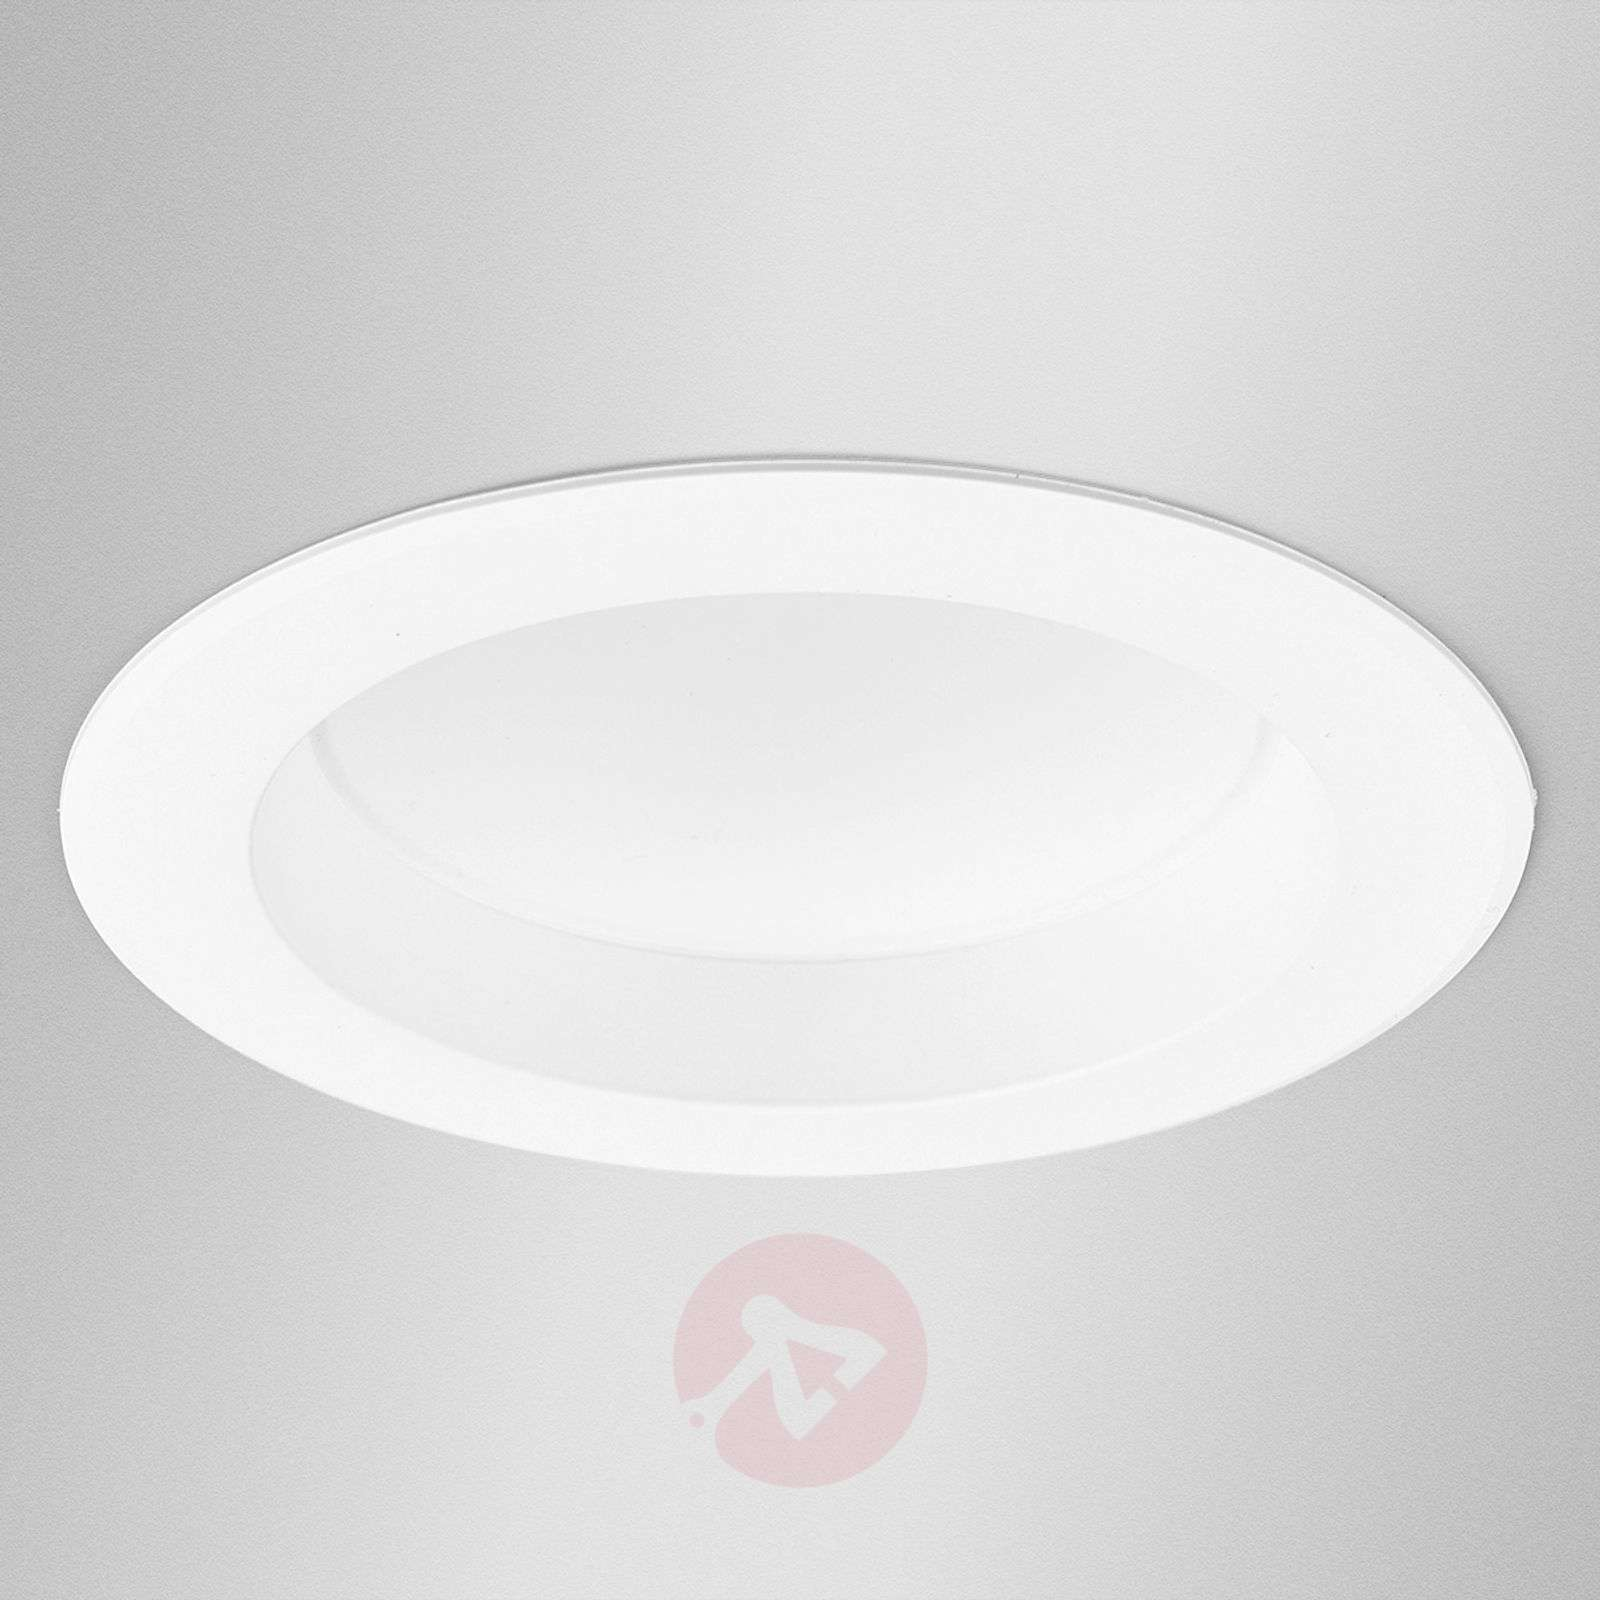 Potente downlight rotondo LED Arian, 14,5cm 12,5W-9978010-03